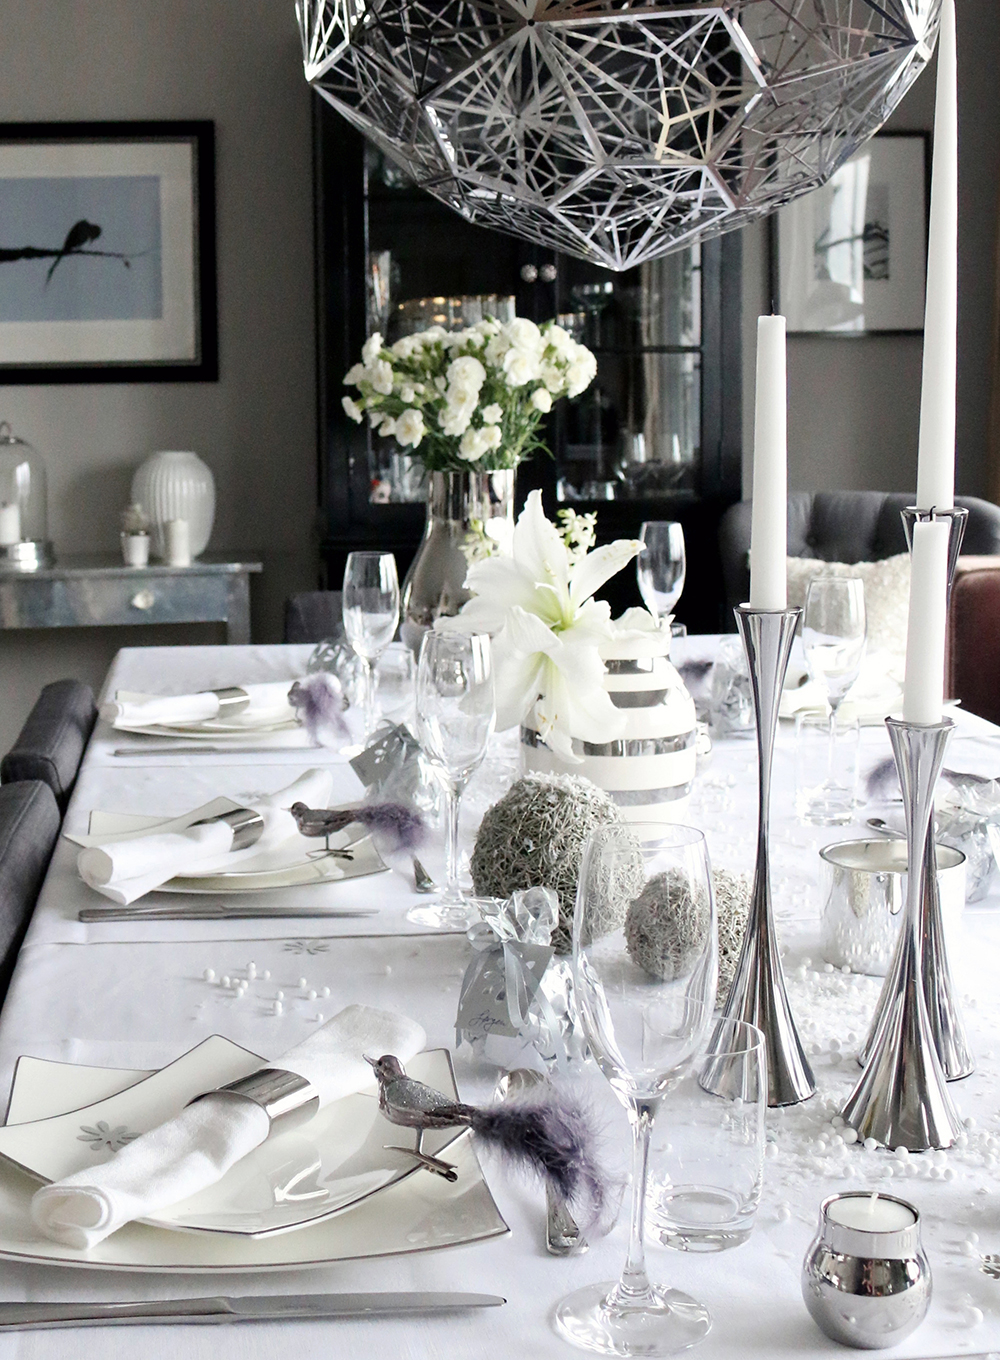 New-Year-tablesetting-4